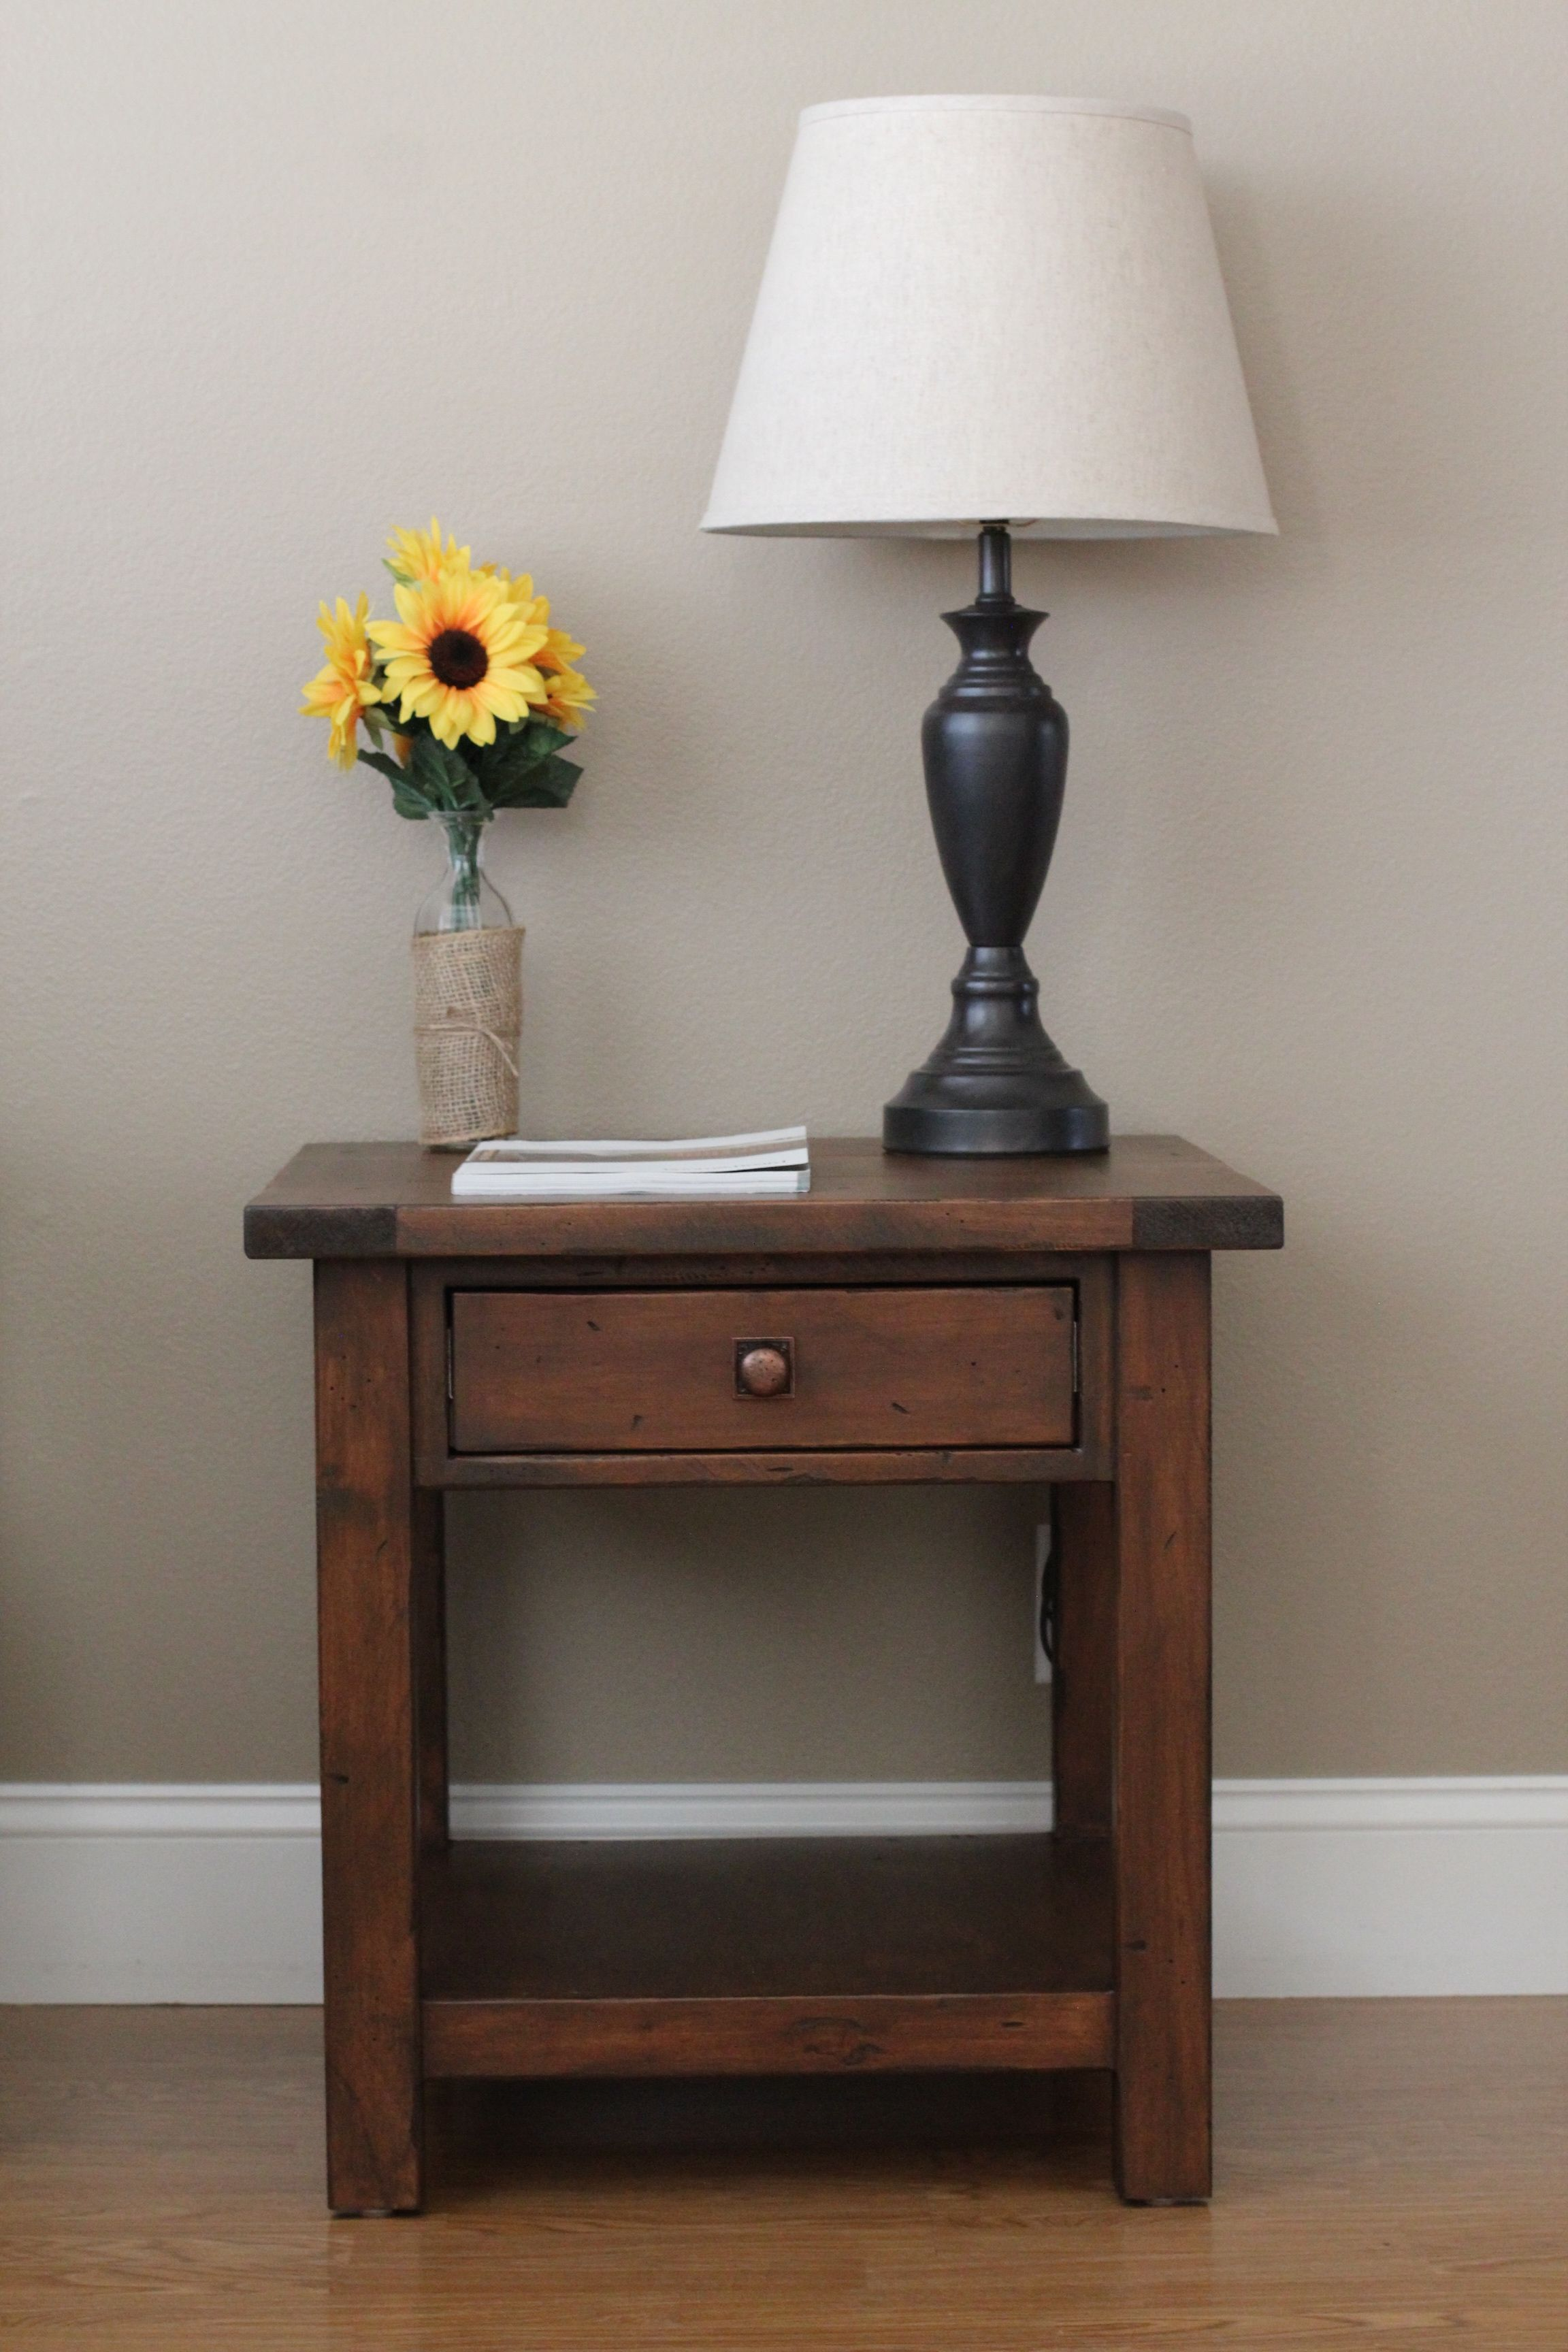 Beautiful Diy 2x4 End Table So Pretty Diy Furniture Projects Decor Furniture